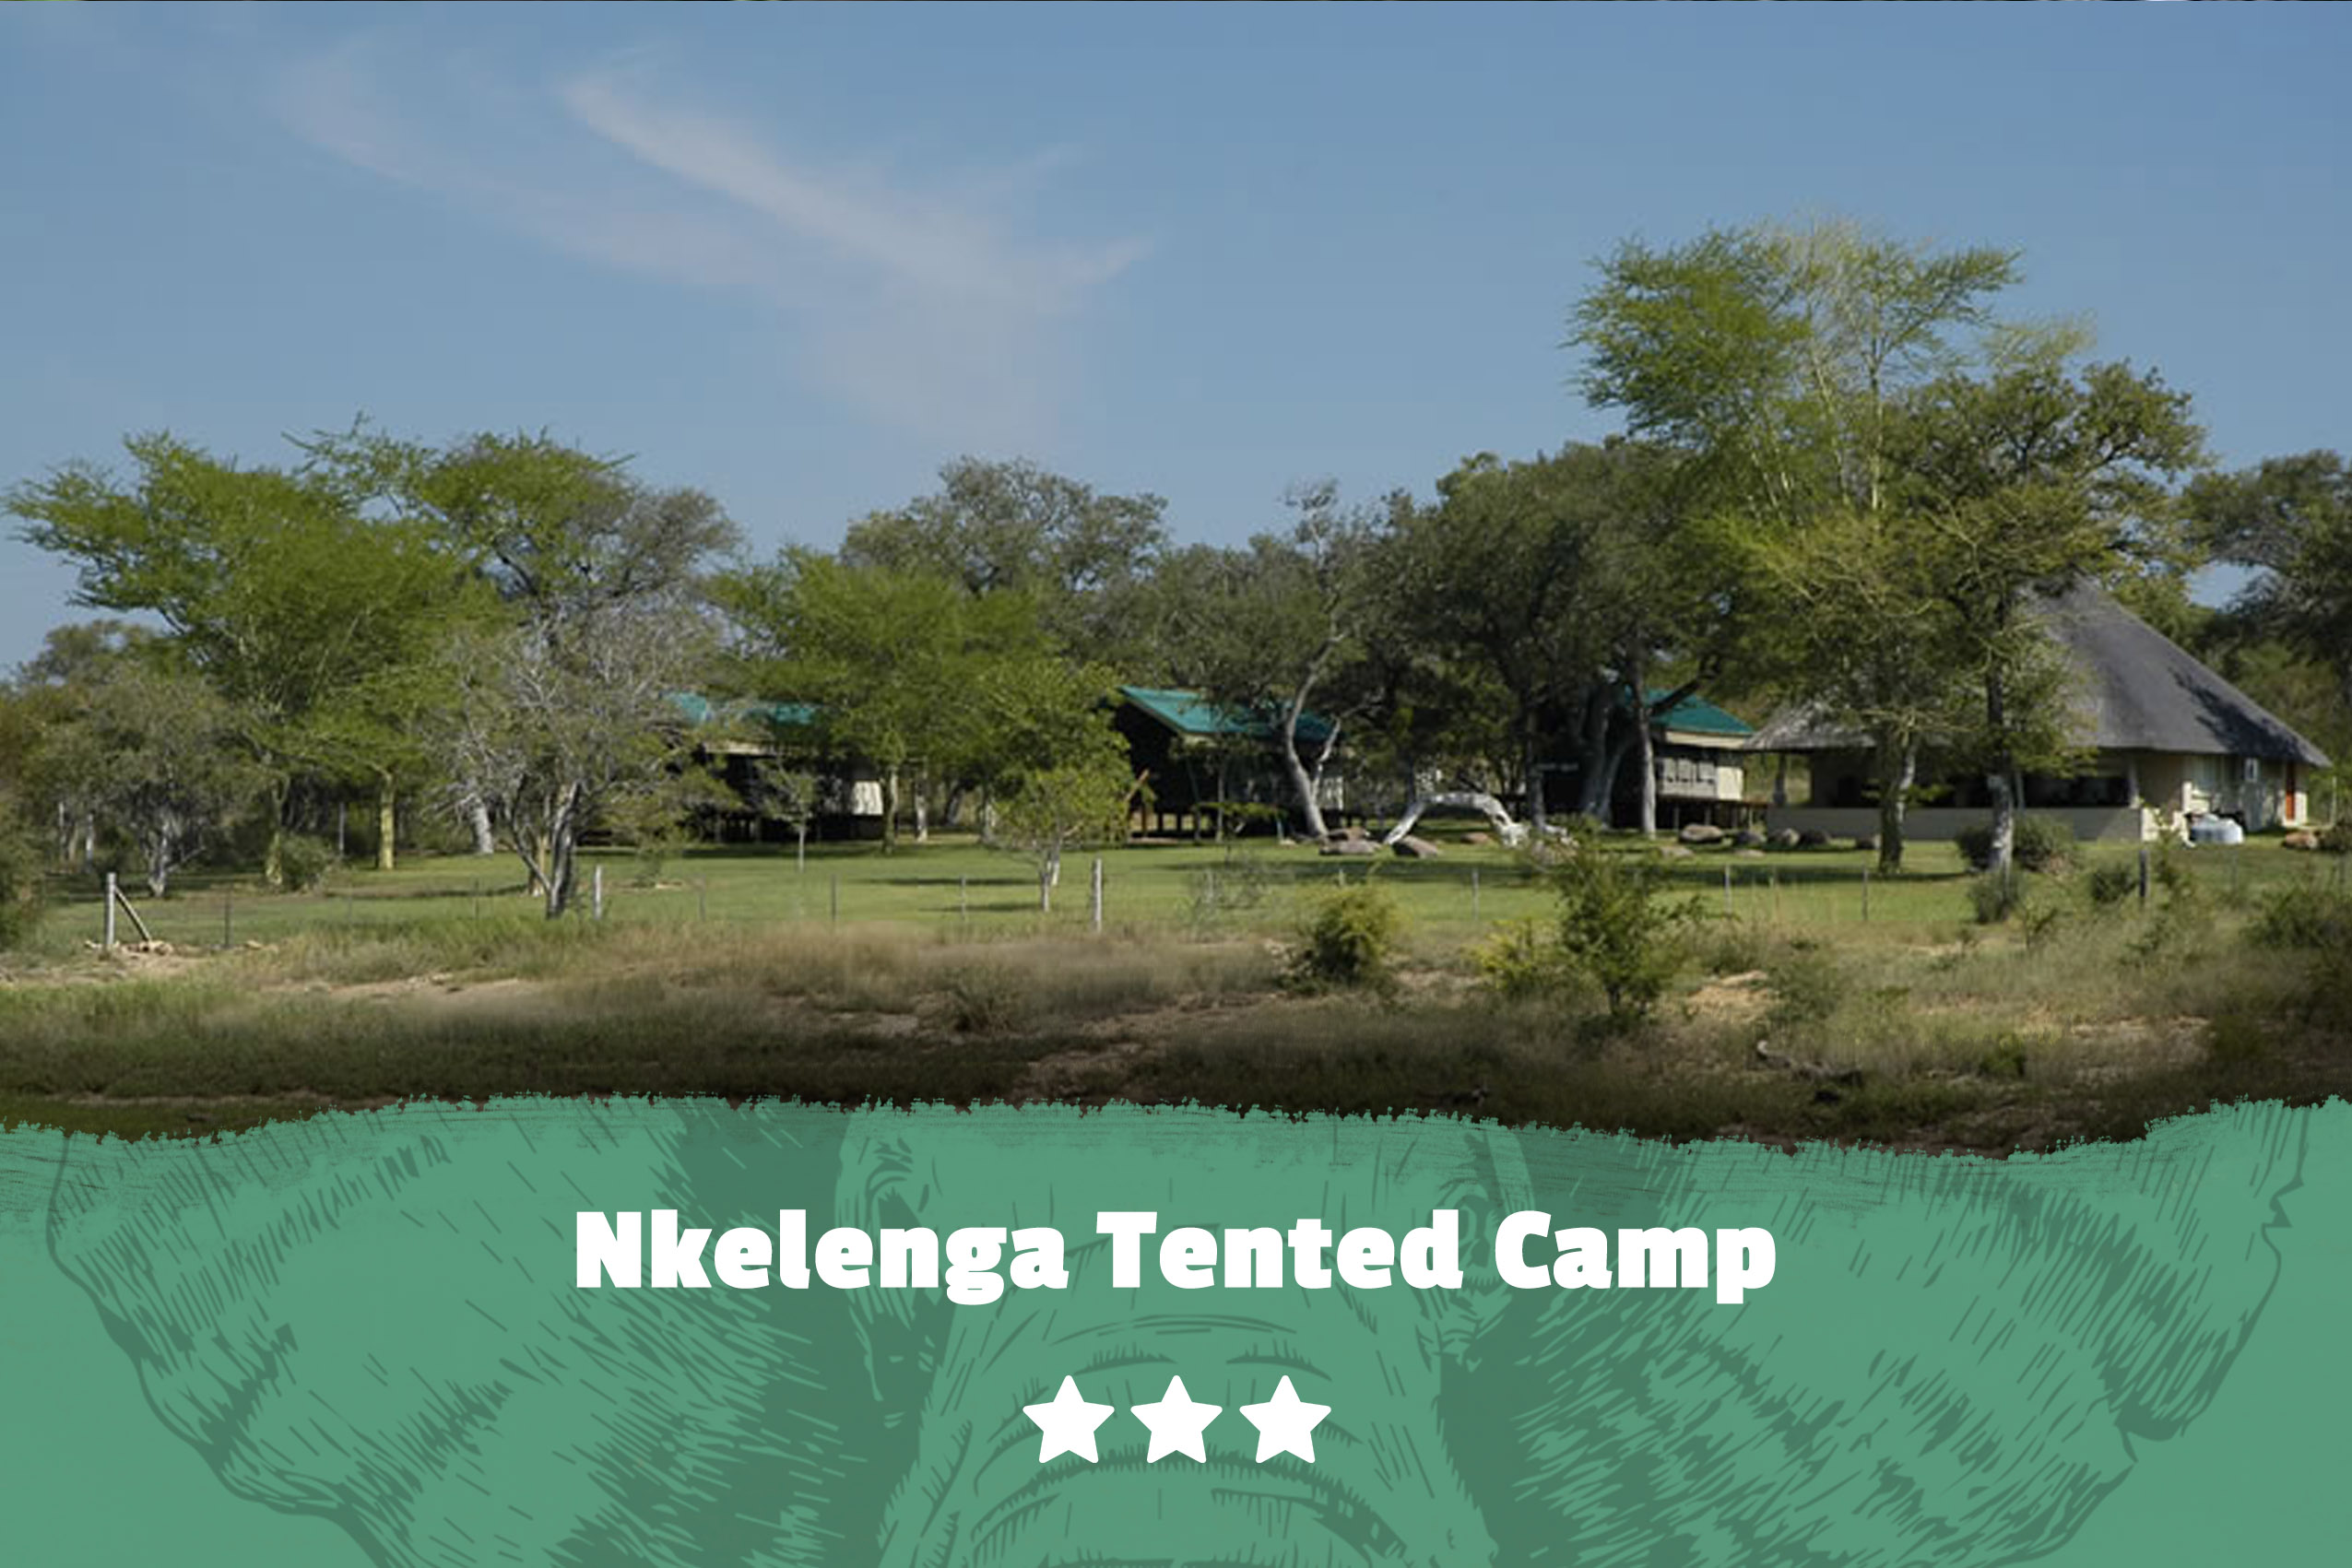 Kruger featured image Nkelenga Tented Camp